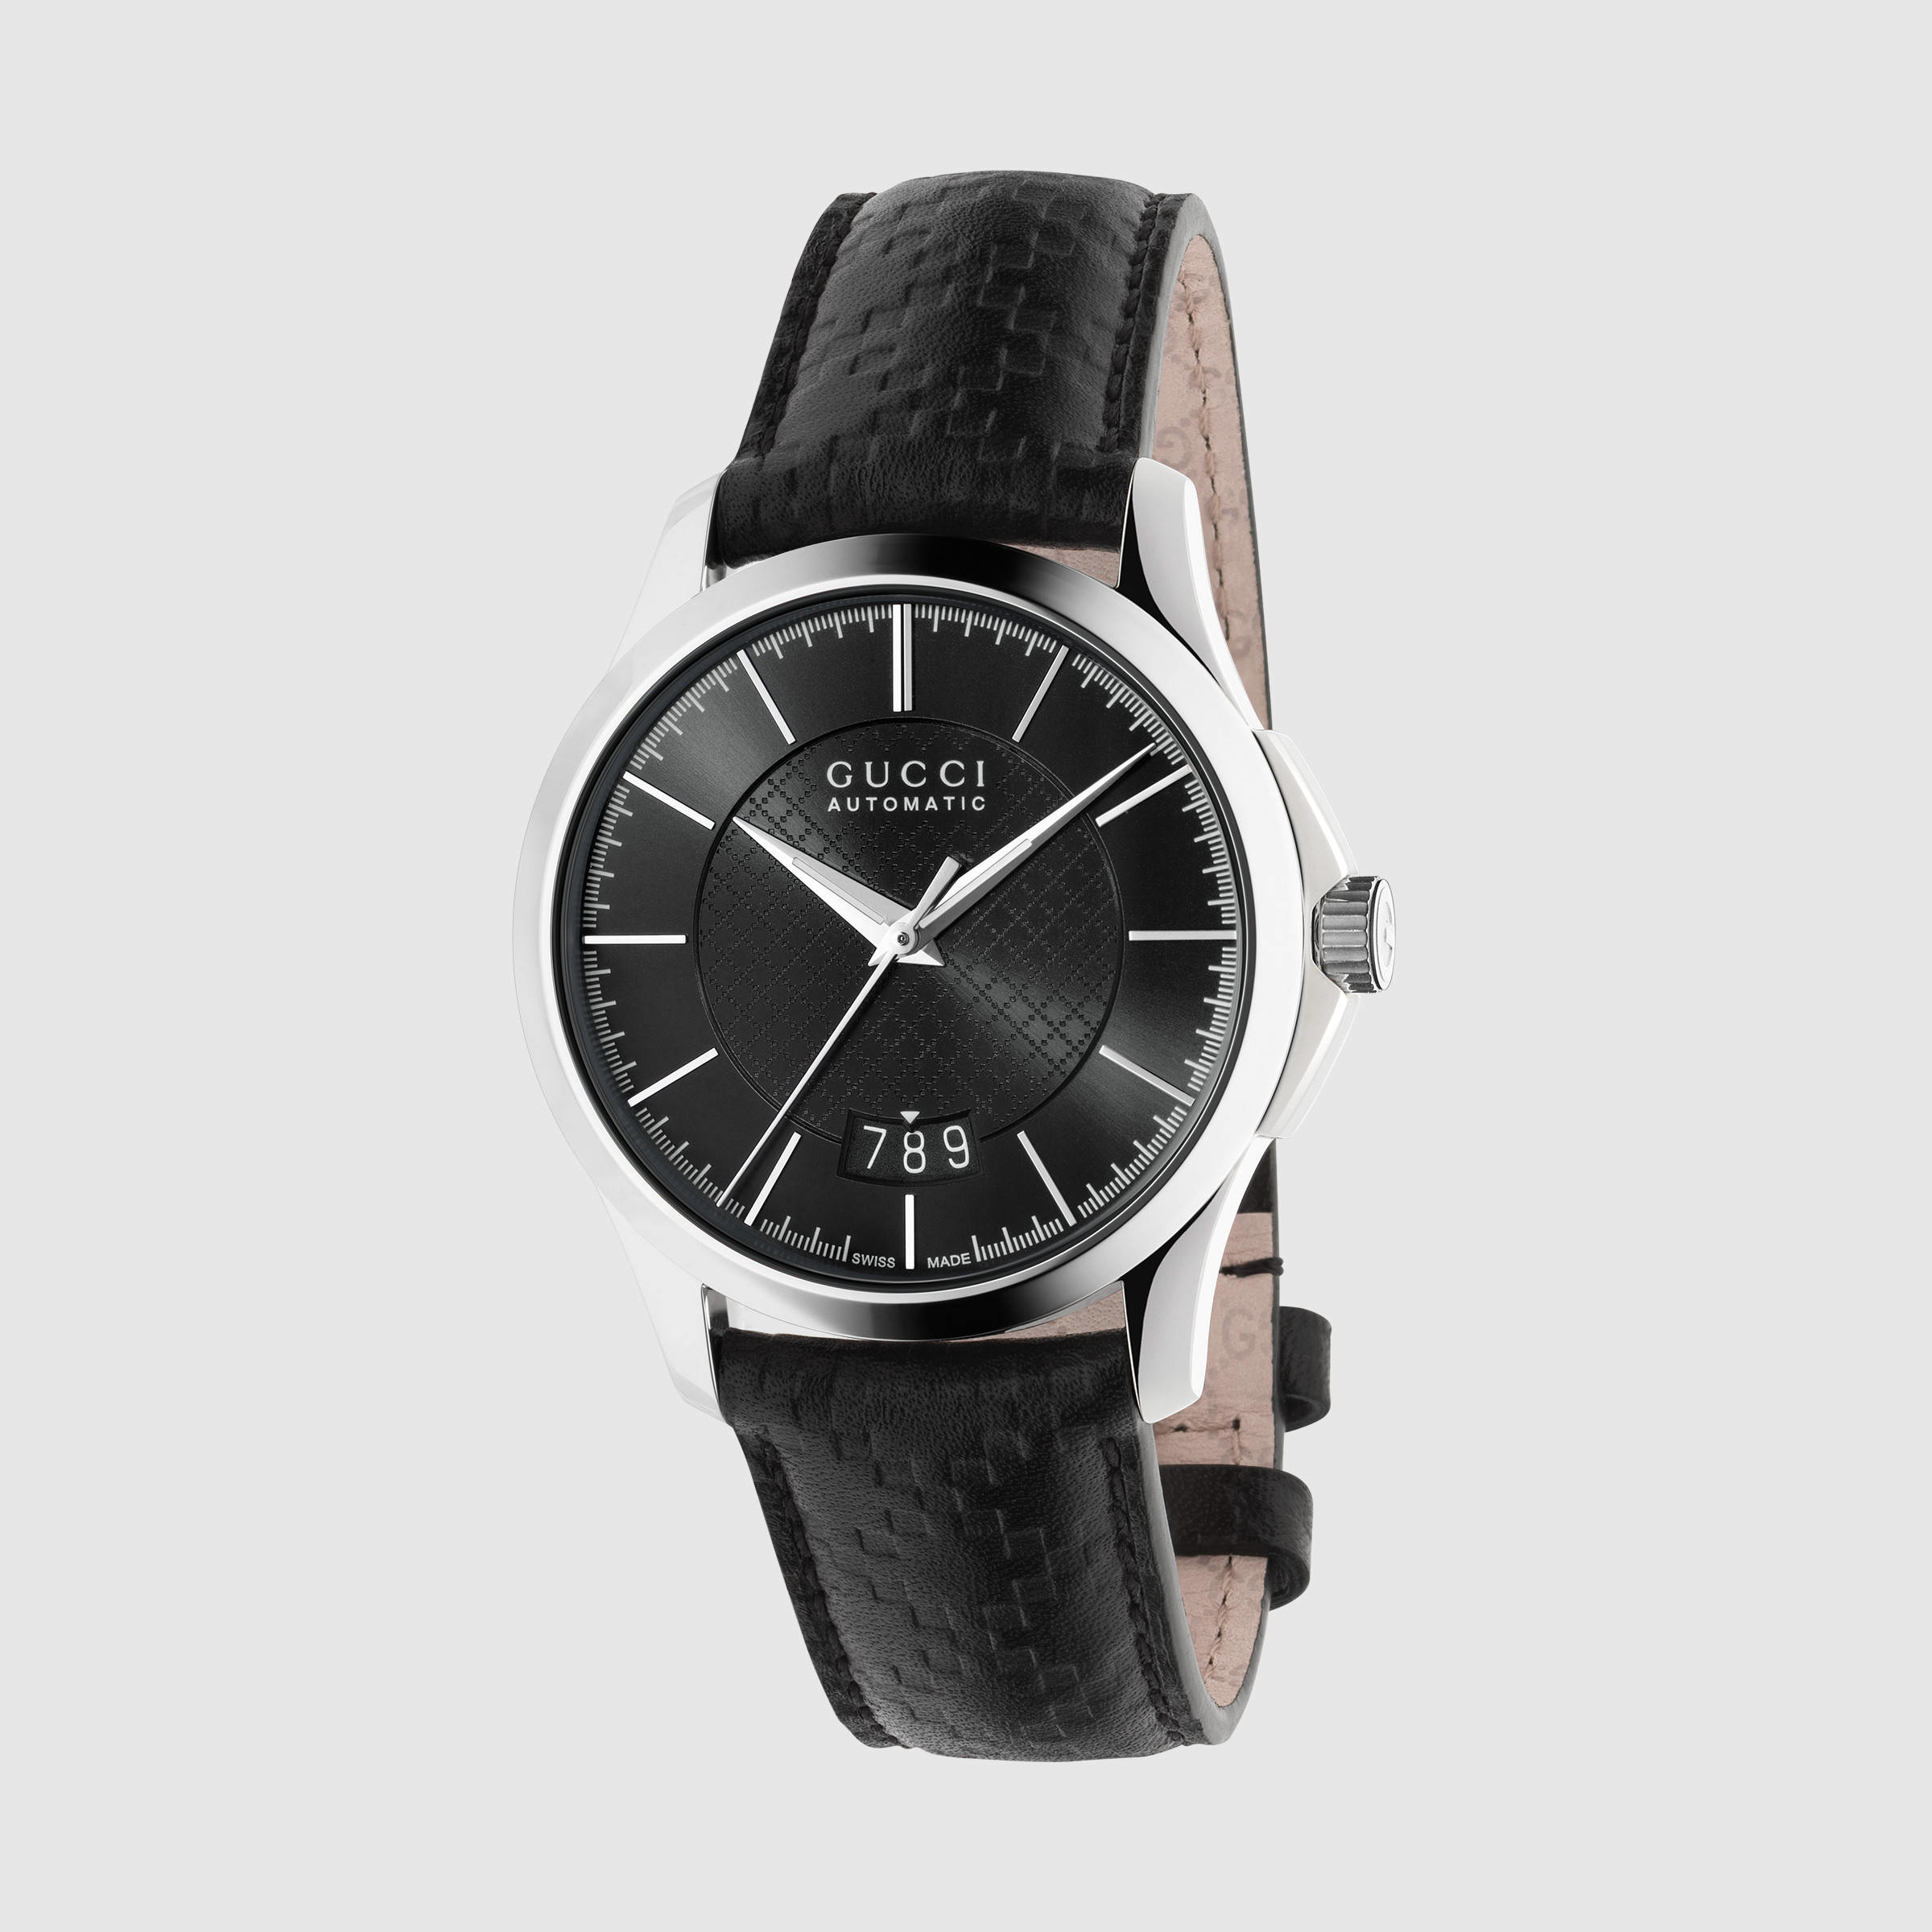 49837fc3b38 Gucci G-timeless Medium Leather Watch in Metallic for Men - Lyst